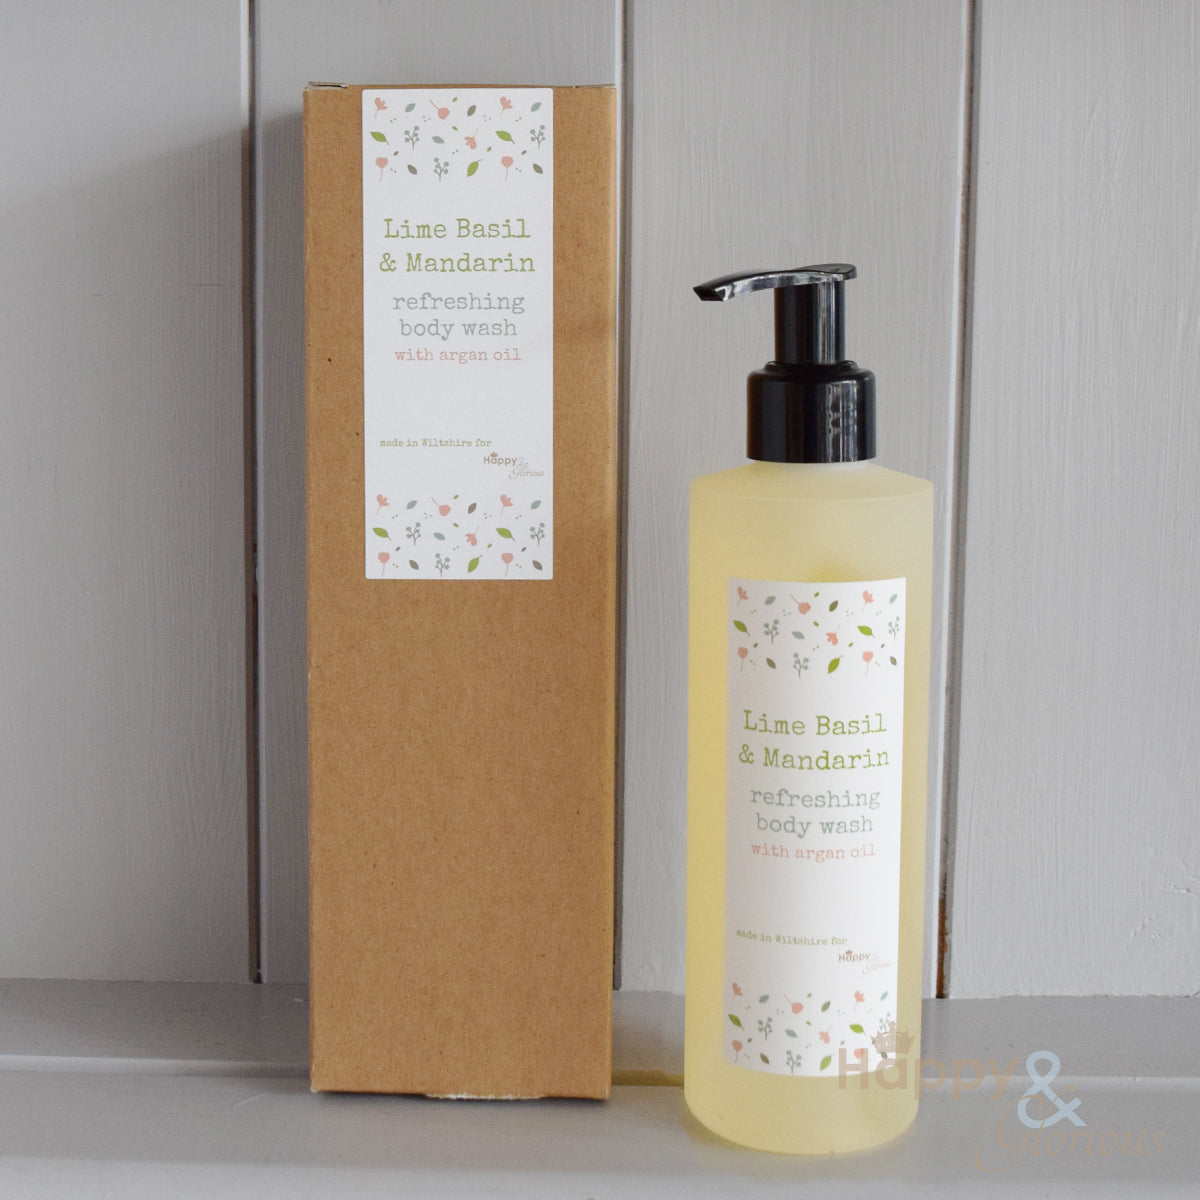 Refreshing Lime Basil & Mandarin body wash